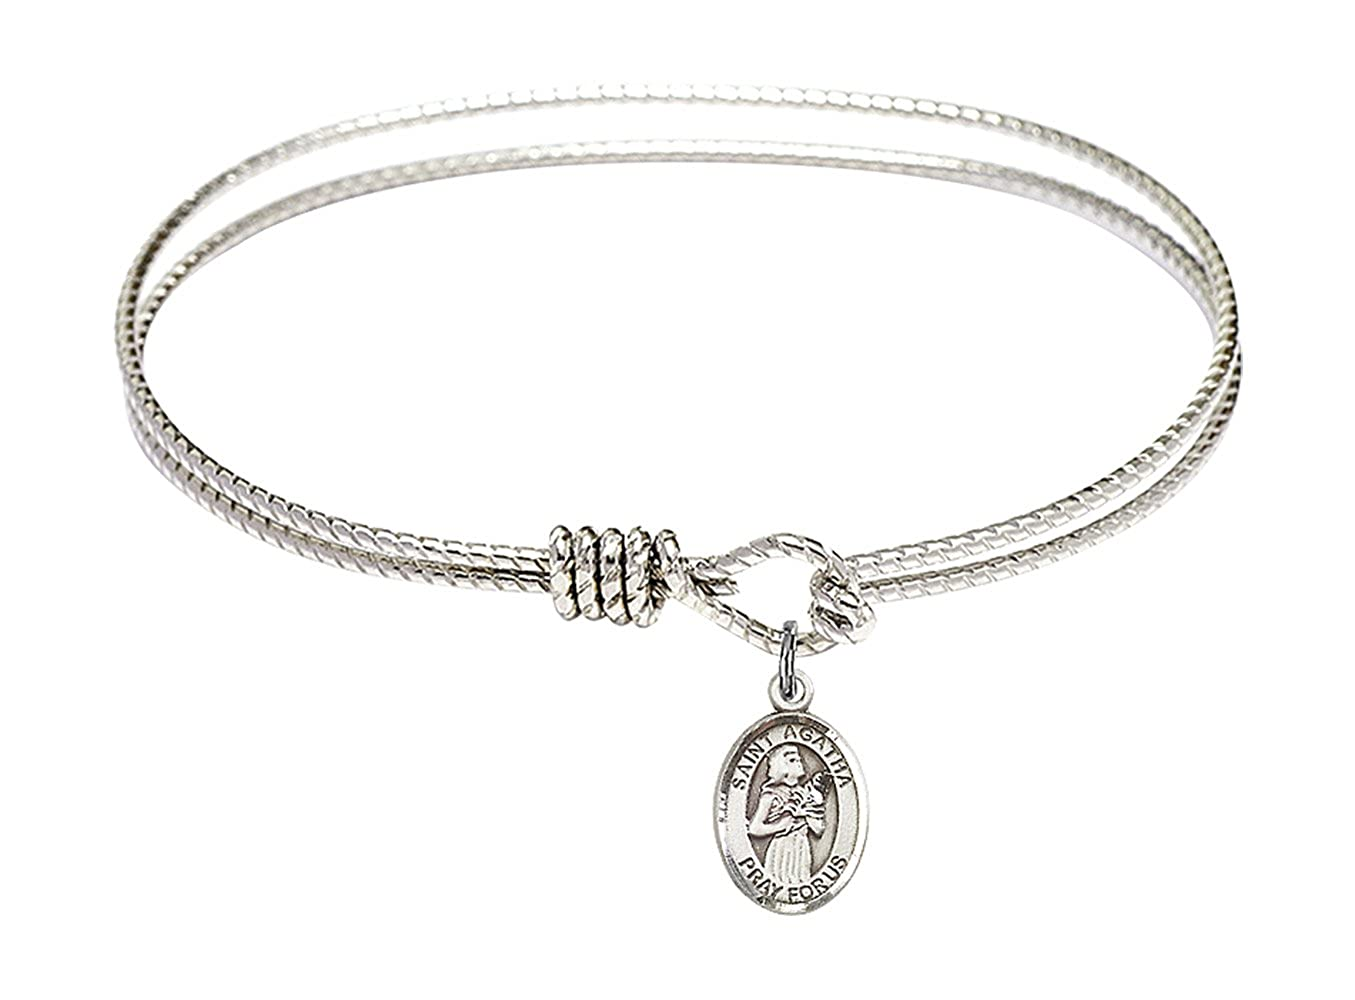 DiamondJewelryNY Eye Hook Bangle Bracelet with a St Agatha Charm.